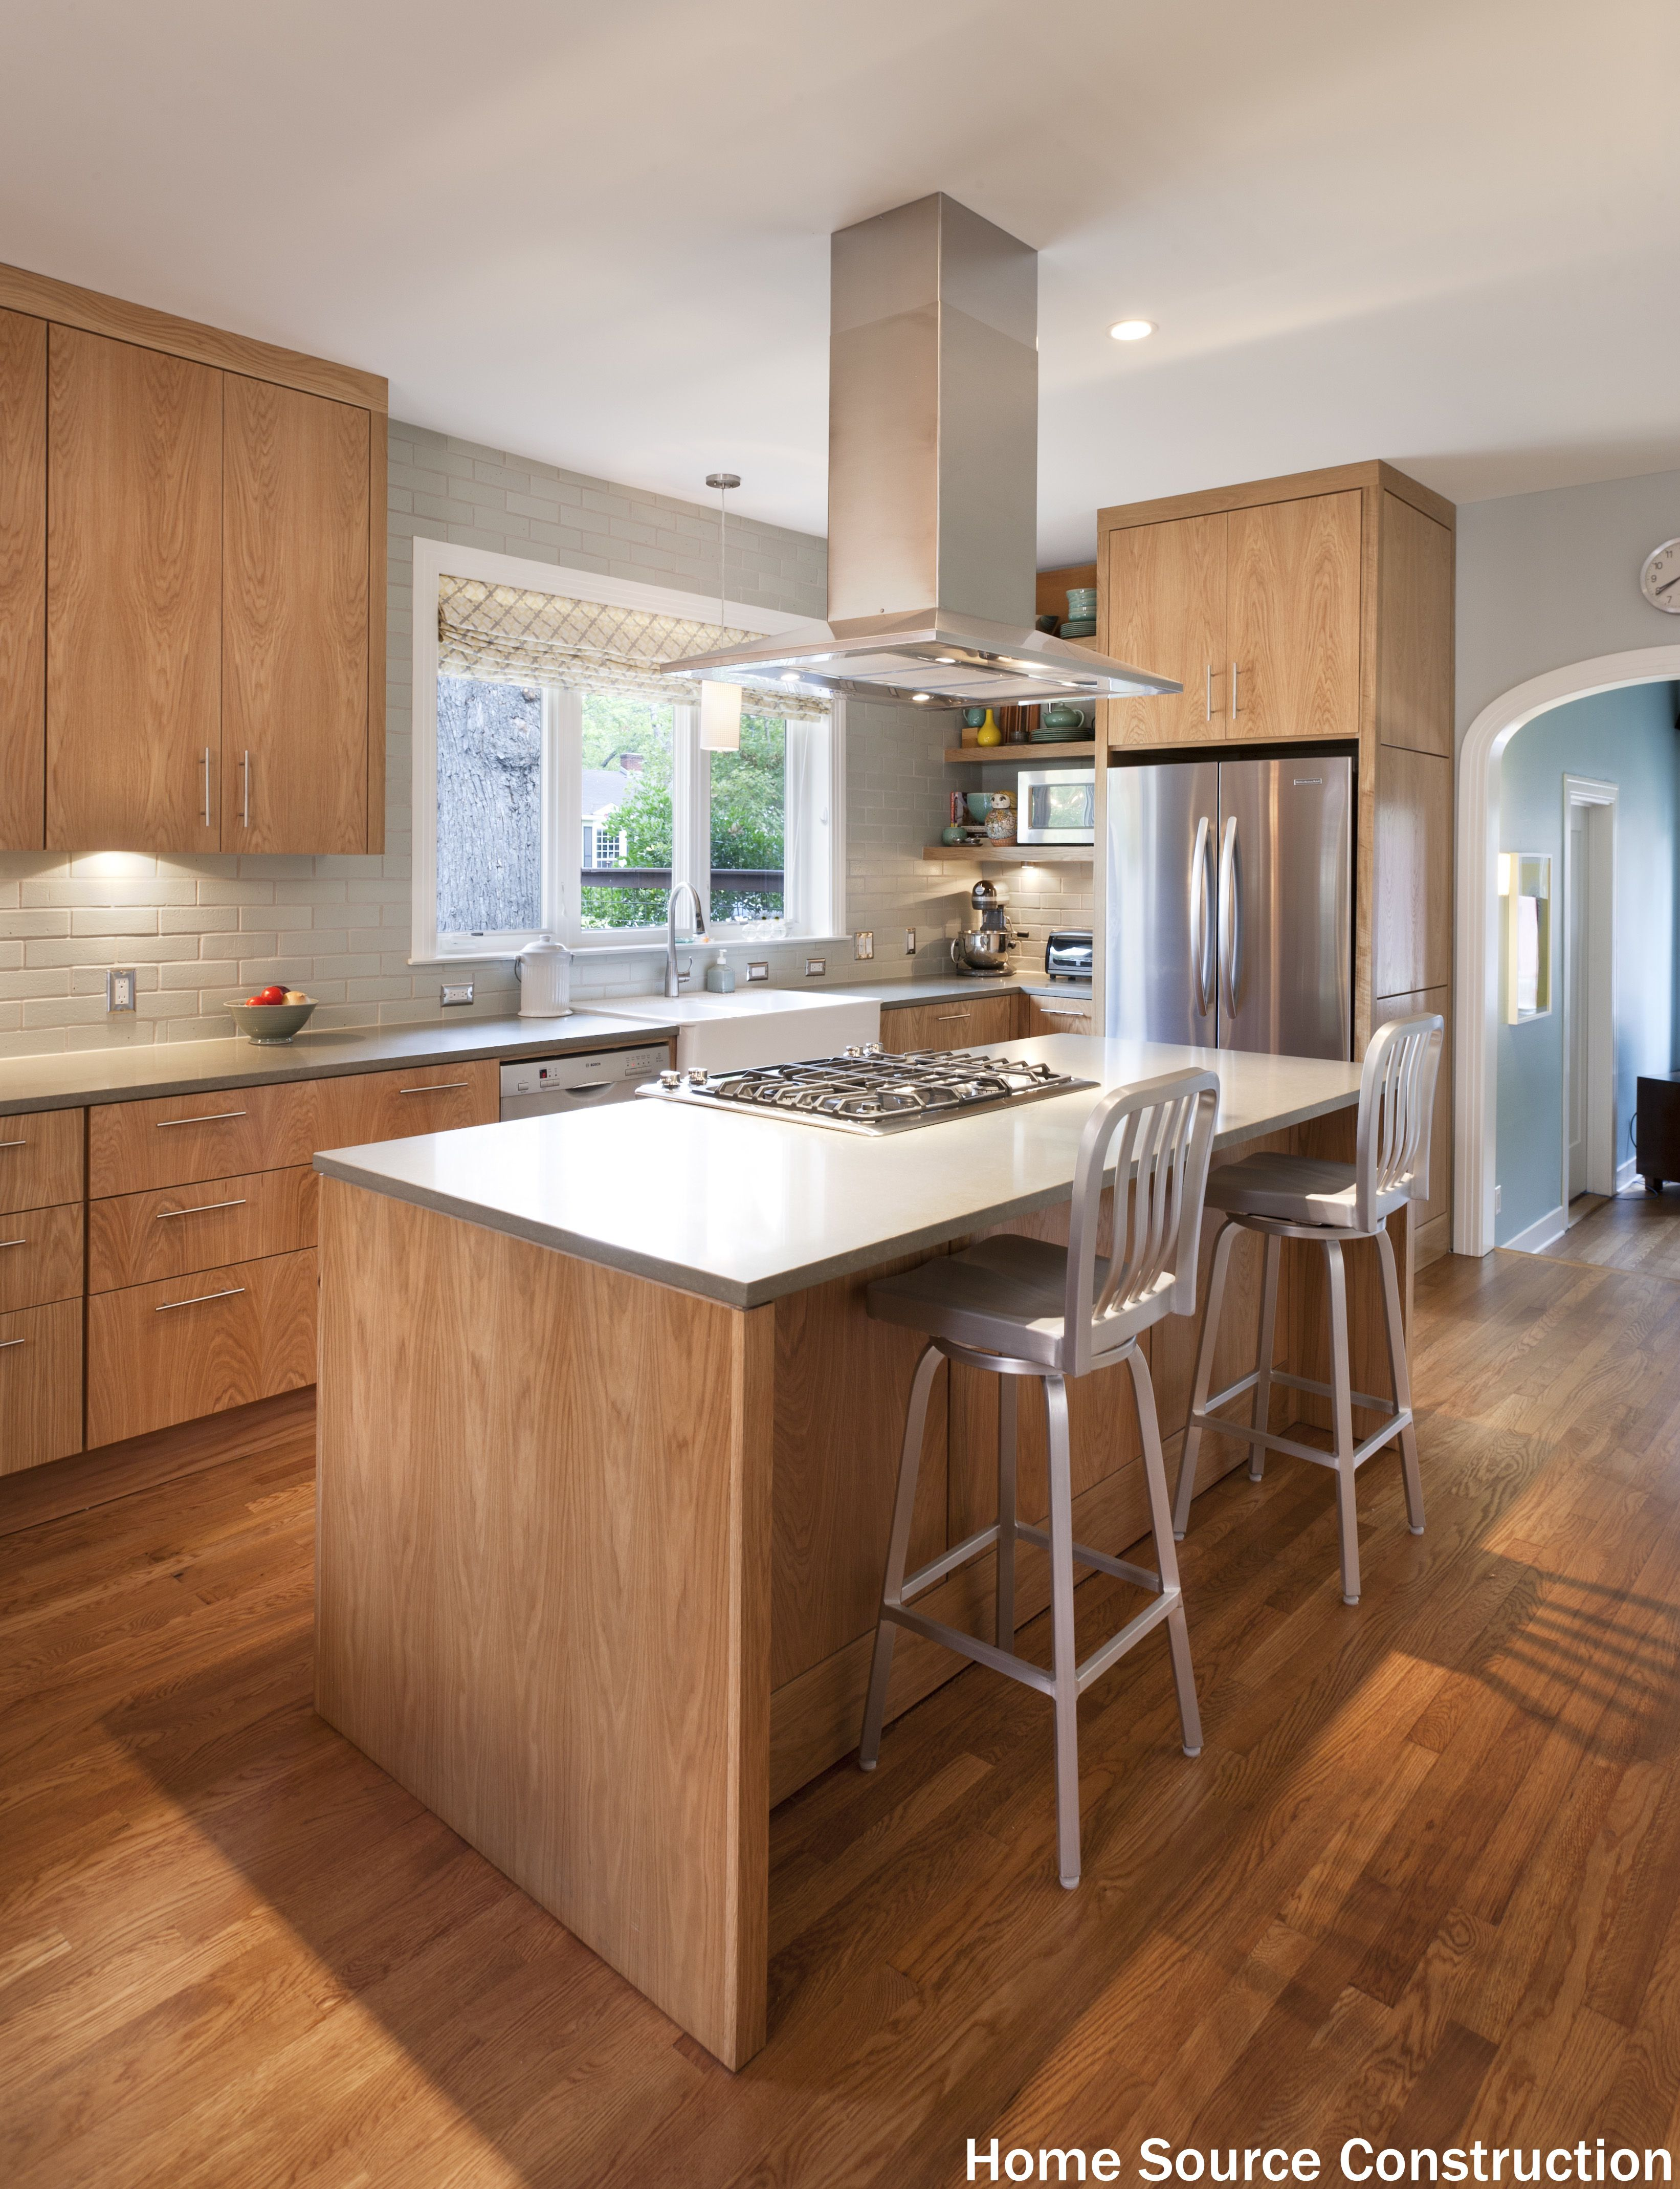 How much does it cost to remodel a kitchen kitchen